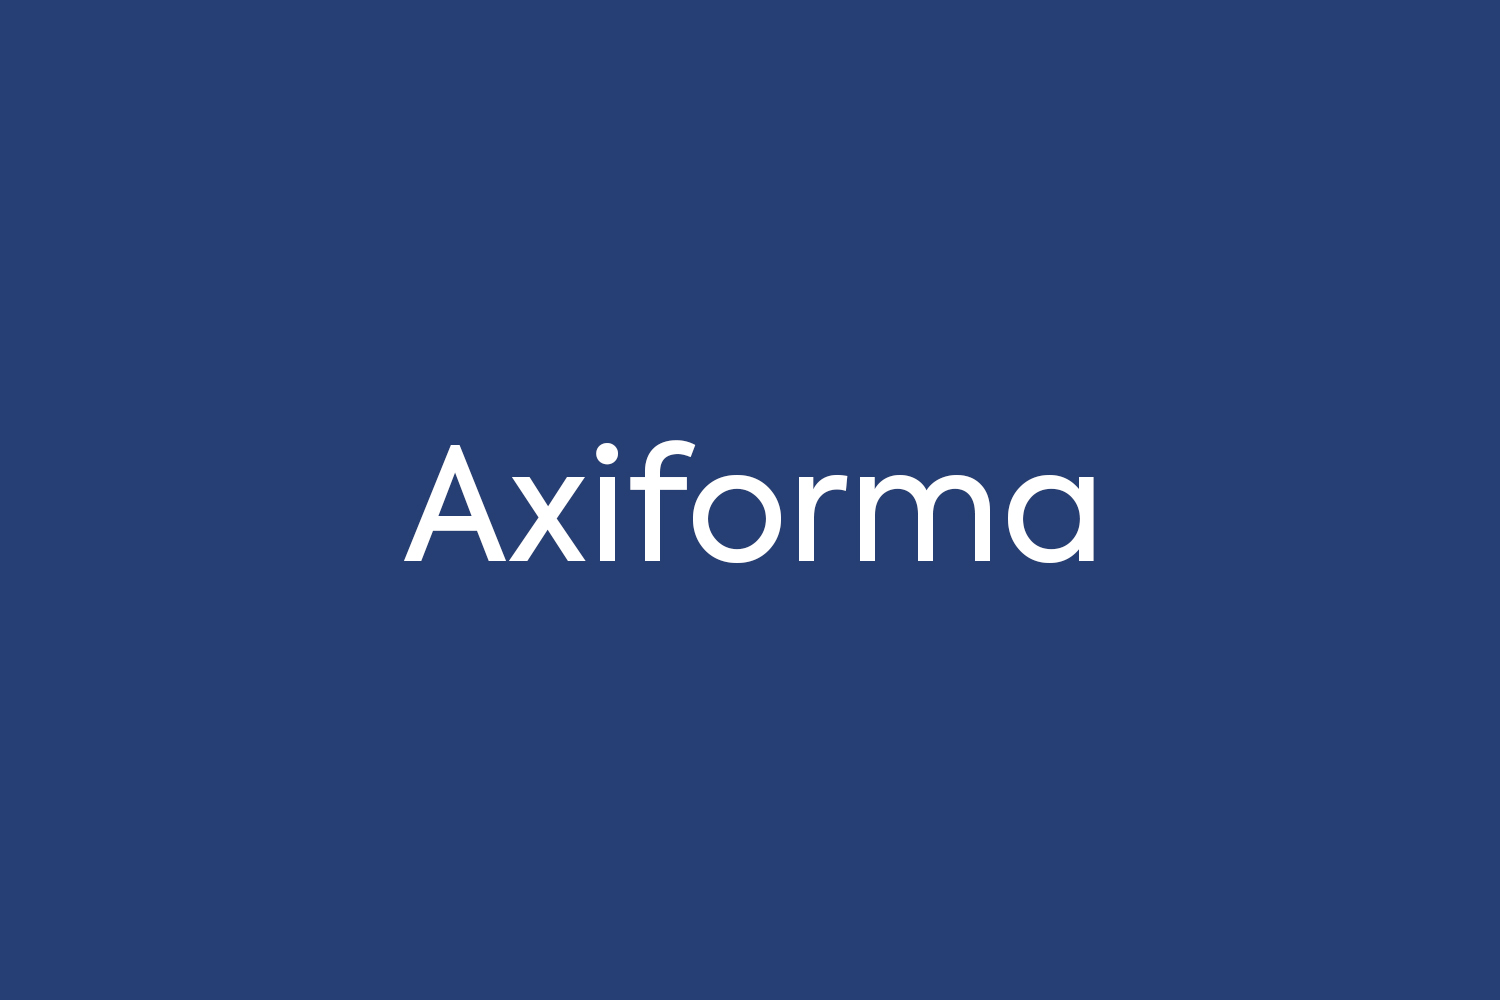 Axiforma Free Font